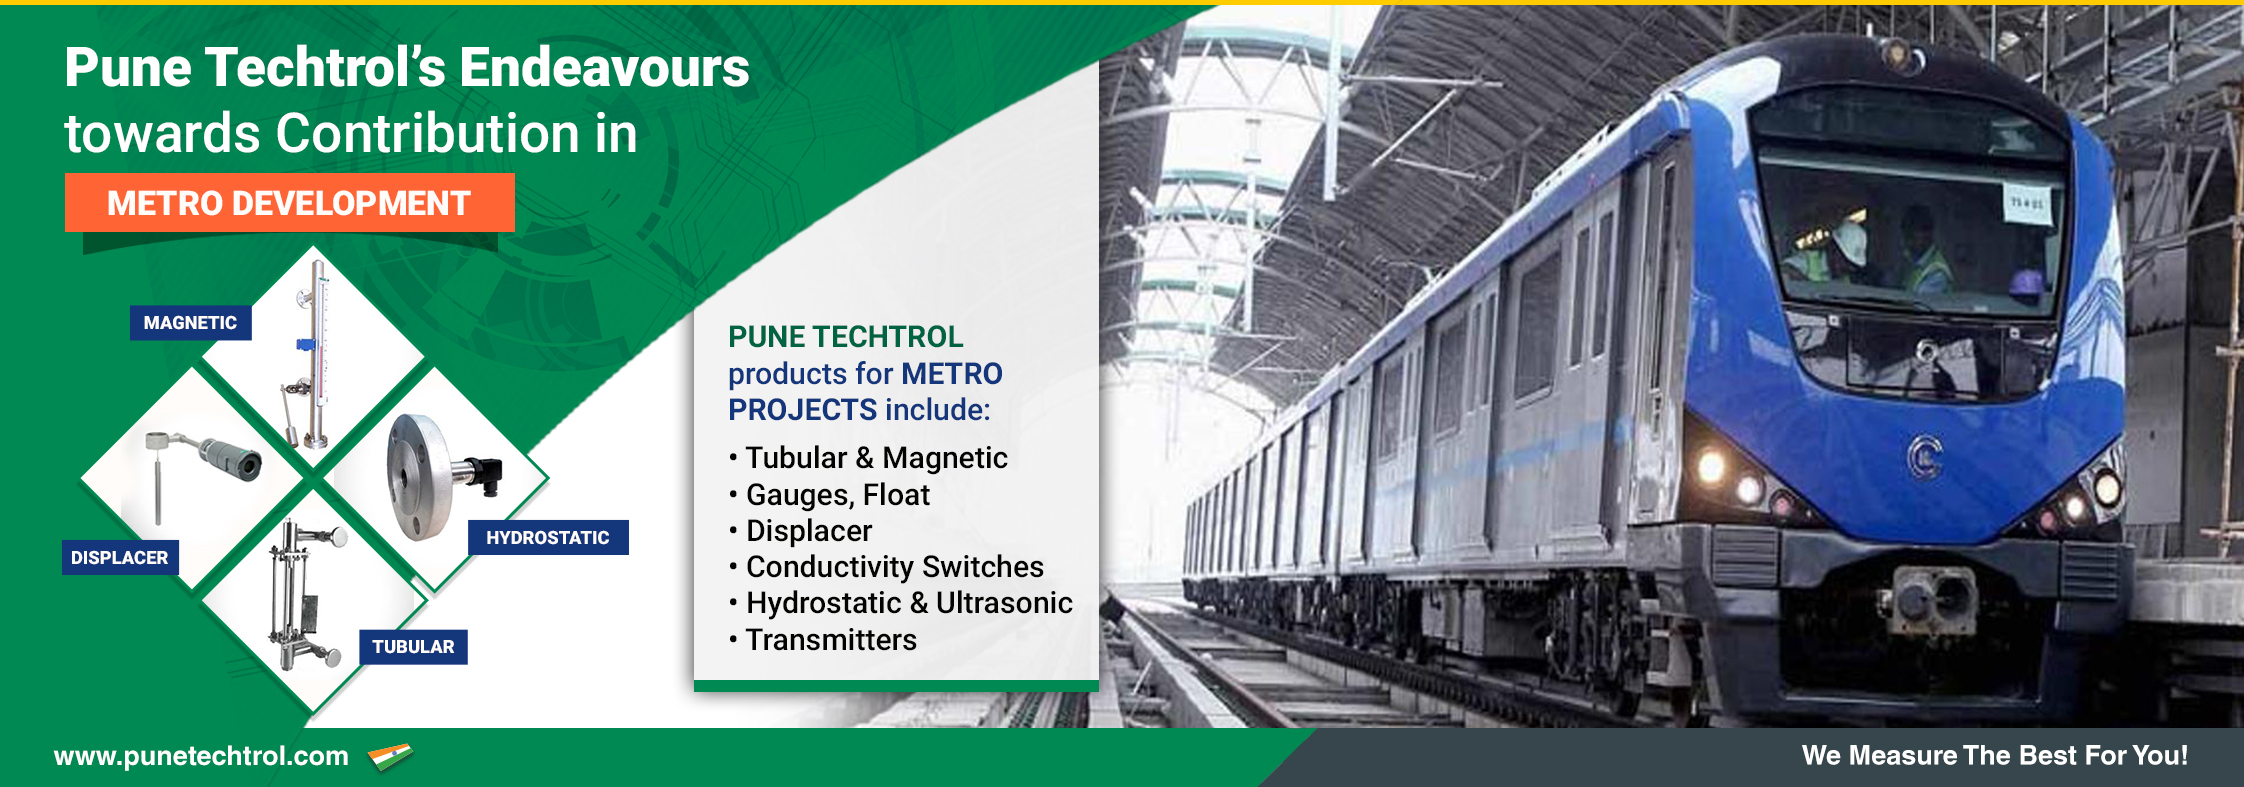 Pune Techtrol's endeavours towards contribution in Metro development